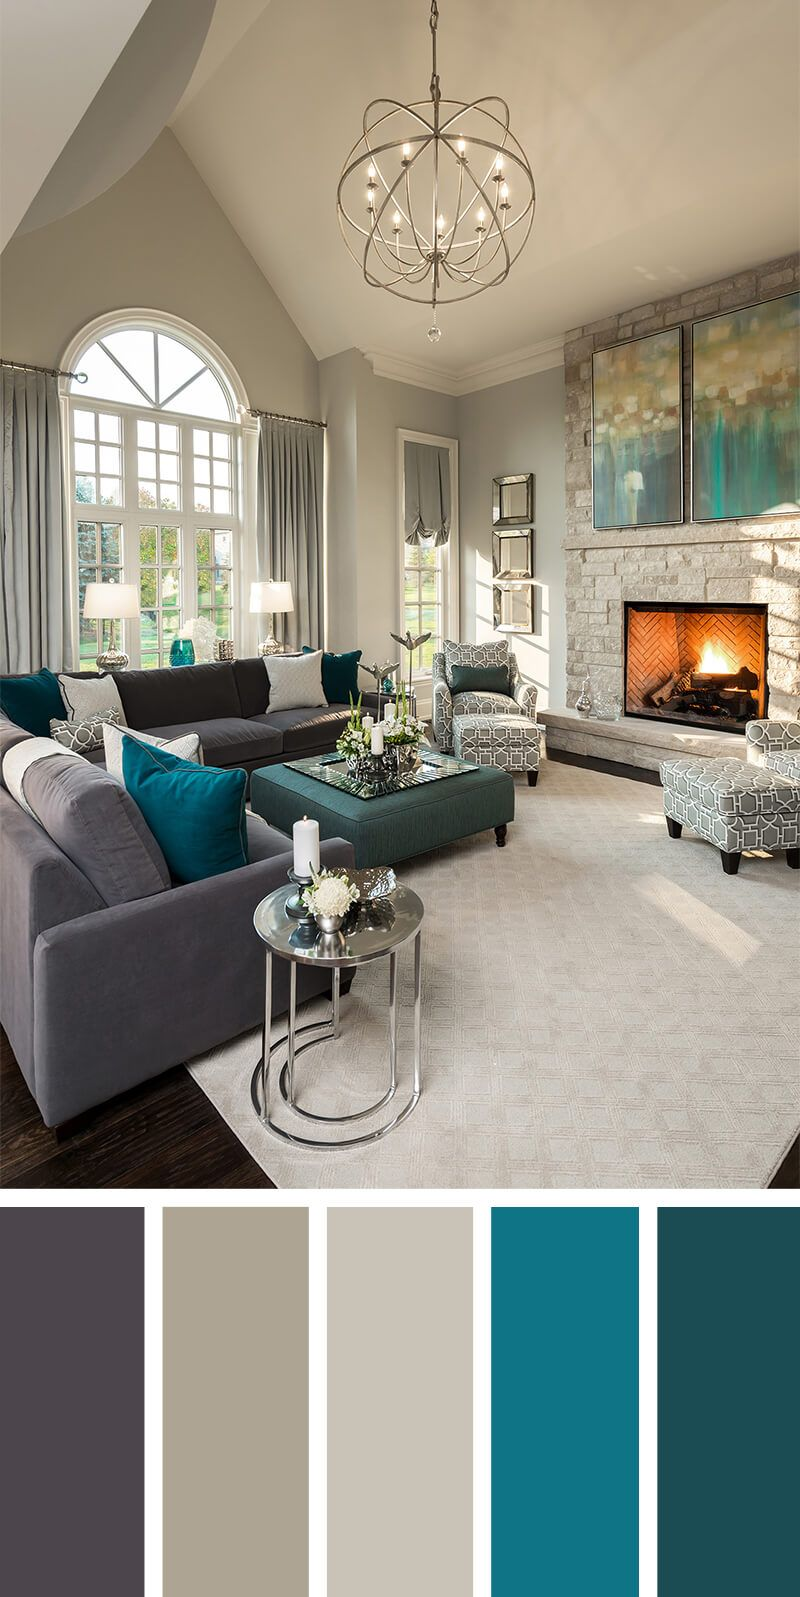 Neutral isnt boring teal living room color scheme colors for living room